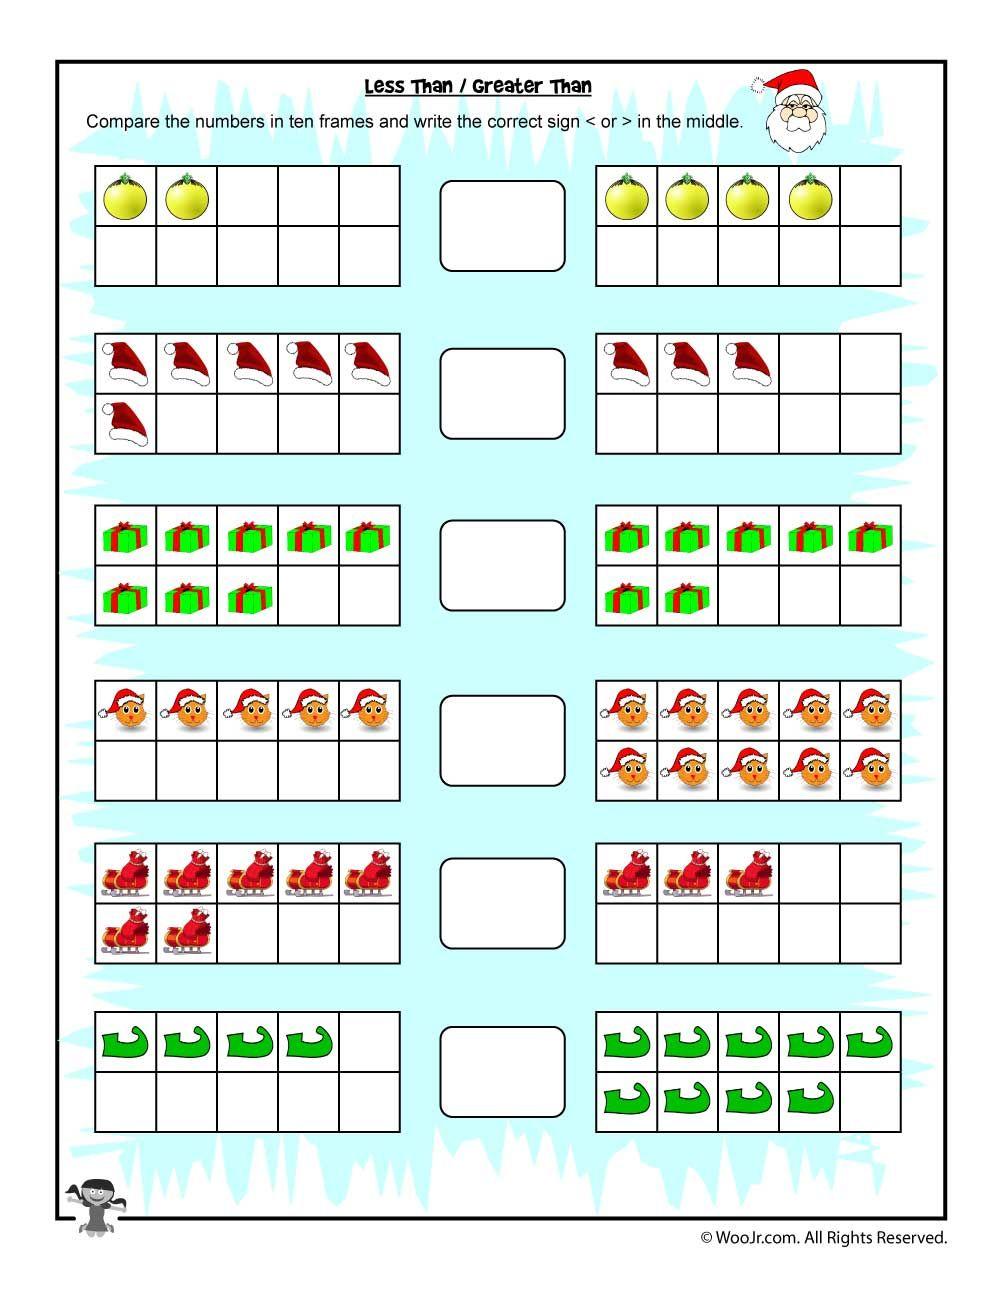 Easy Counting Greater Than/Less Than Worksheet | Pinterest ...